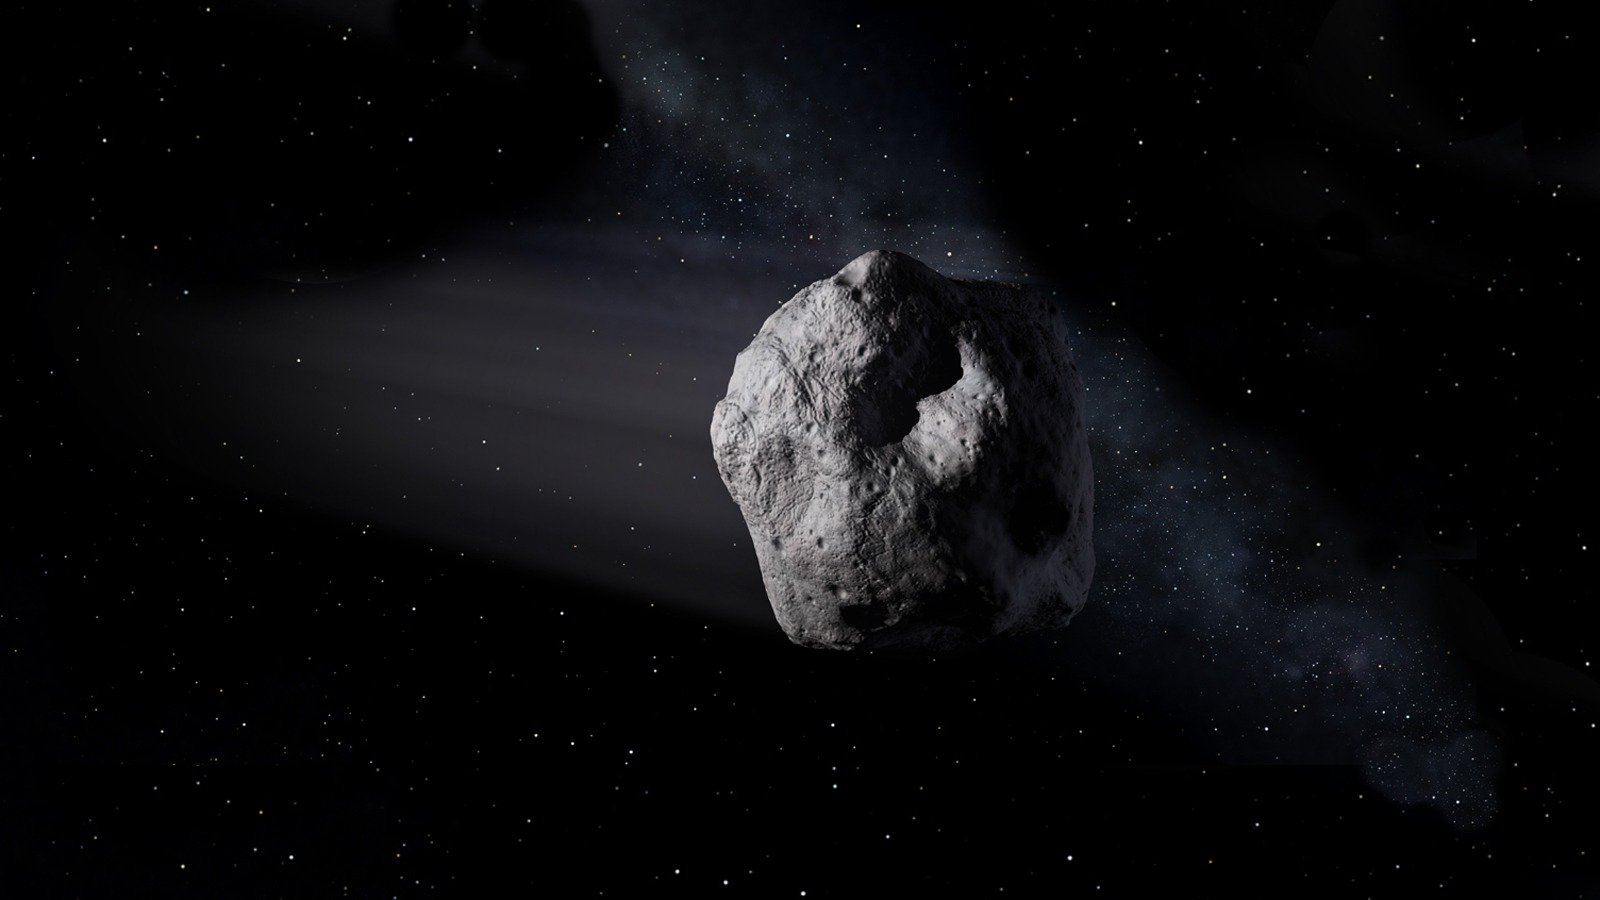 Asteroids are small rocky bodies